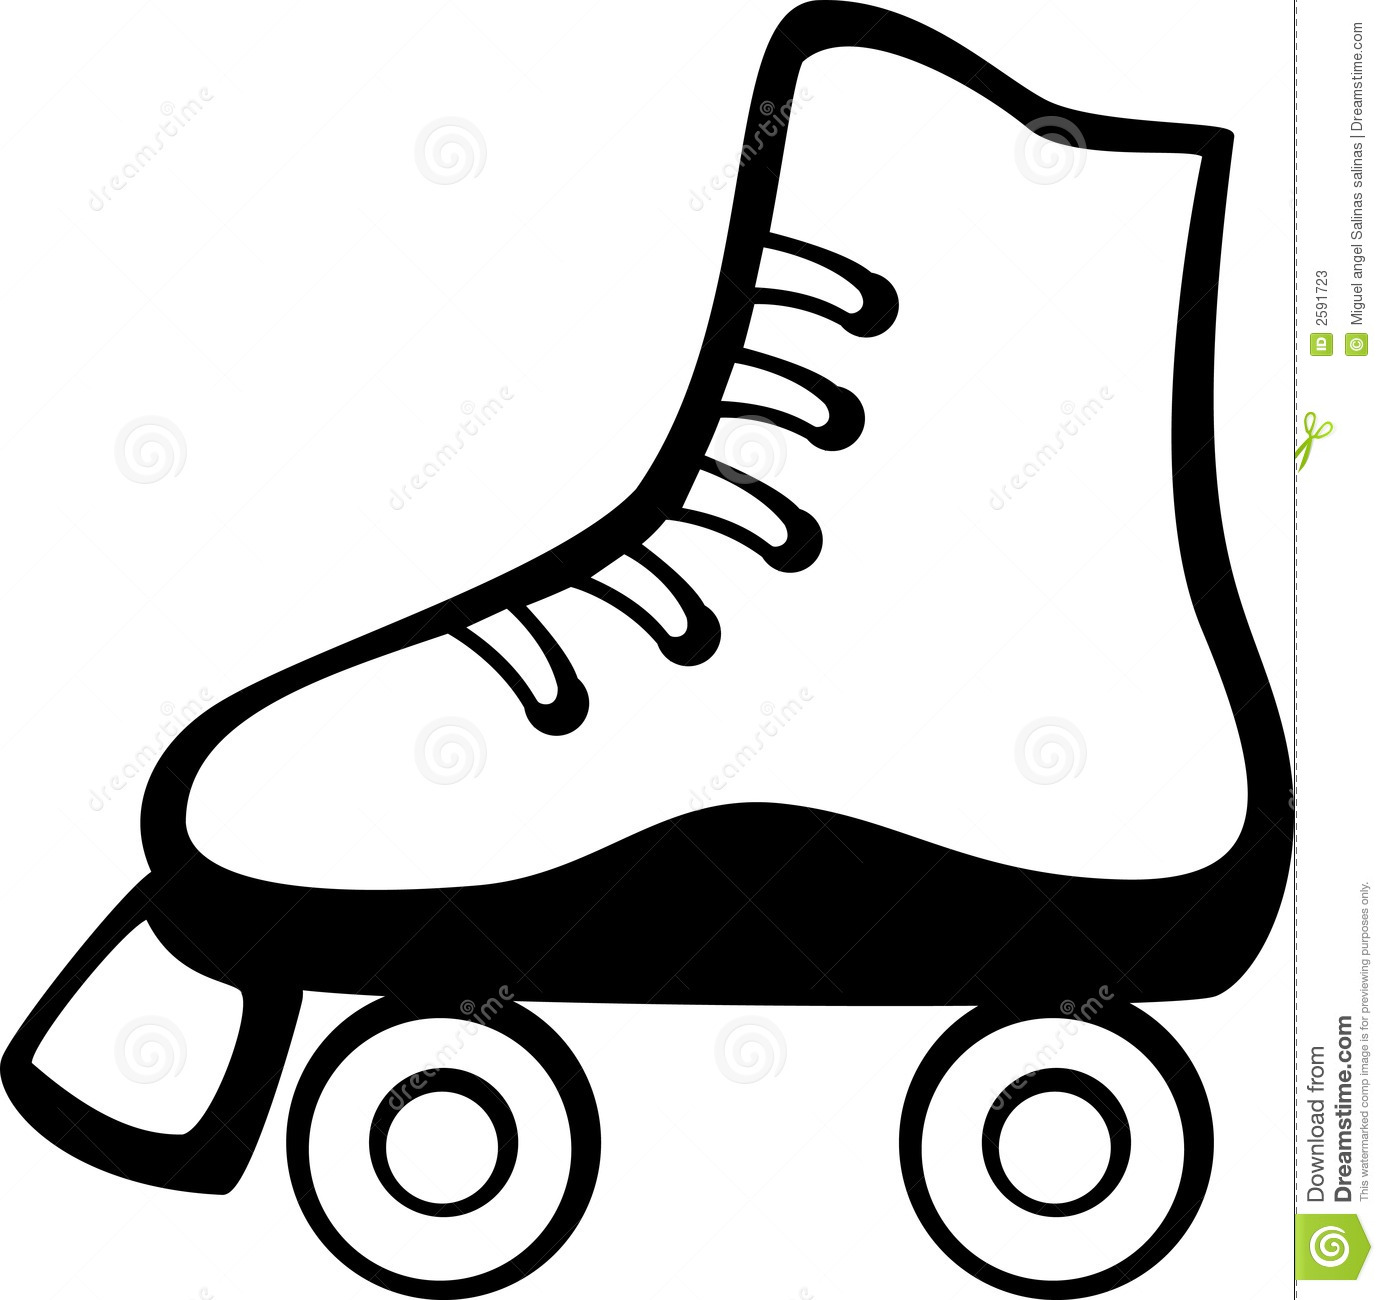 Roller 20clipart Clipart Panda Free Clipart Images